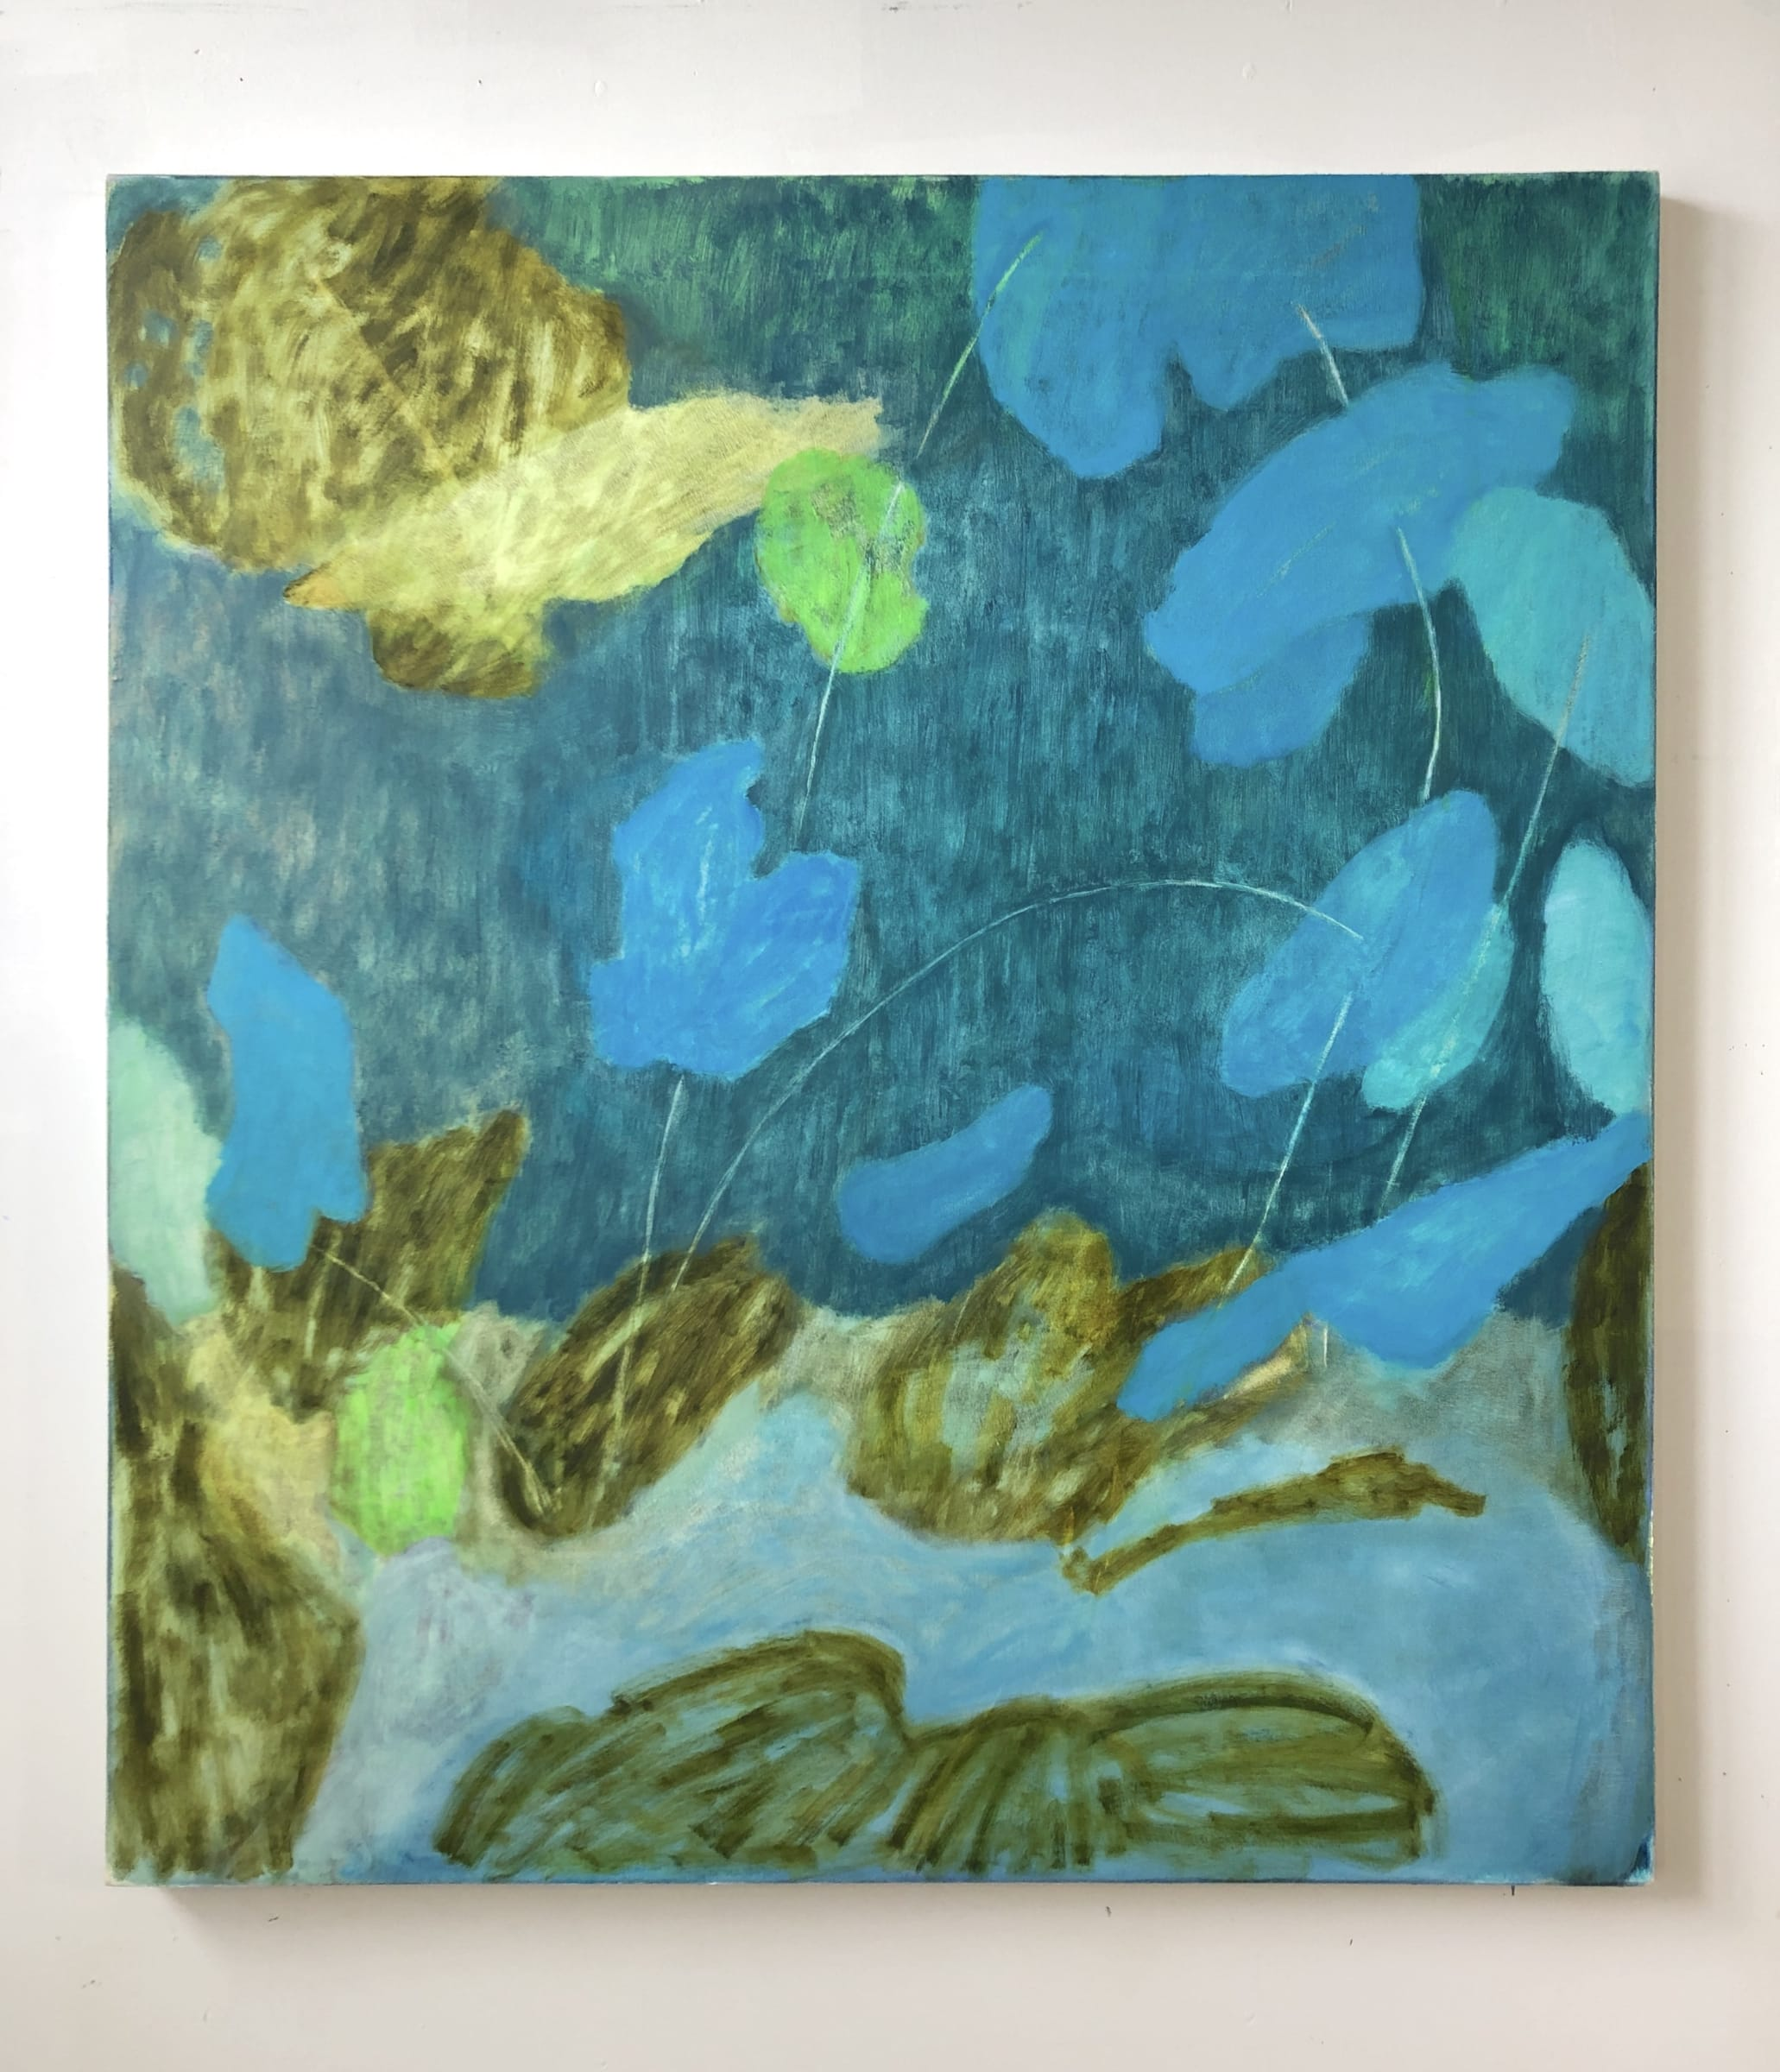 "<span class=""link fancybox-details-link""><a href=""/artists/28-rebekah-callaghan/works/957-rebekah-callaghan-soft-tide/"">View Detail Page</a></span><div class=""artist""><strong>Rebekah Callaghan</strong></div> <div class=""title""><em>Soft Tide</em></div> <div class=""medium"">Oil on canvas</div> <div class=""dimensions"">42 x 38 inches</div>"